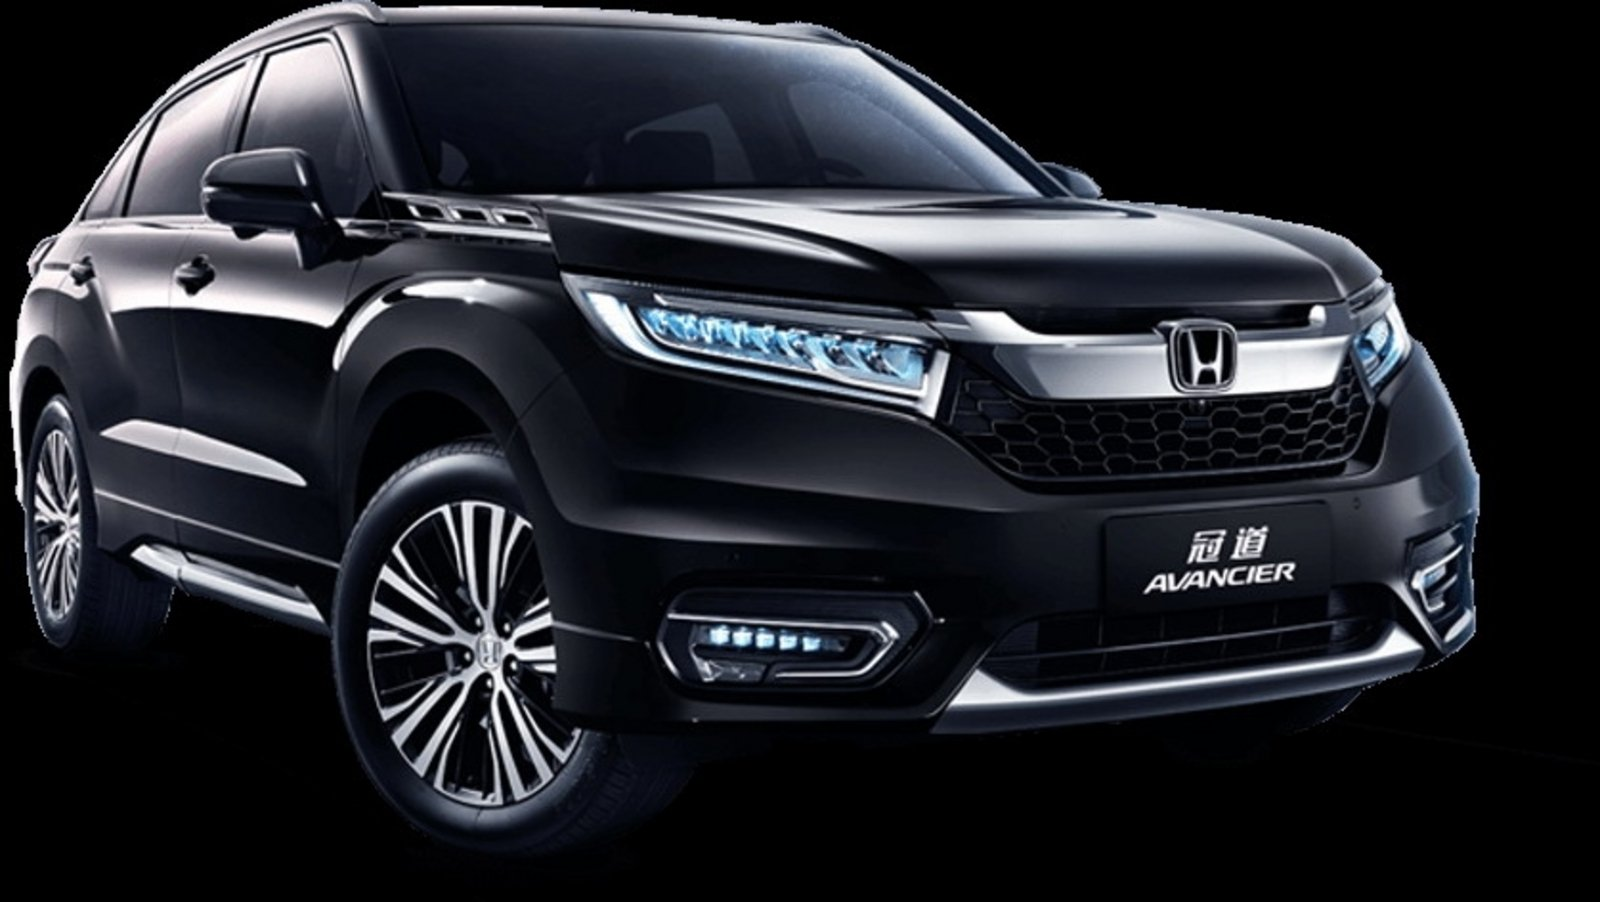 2017 Honda Avancier Review